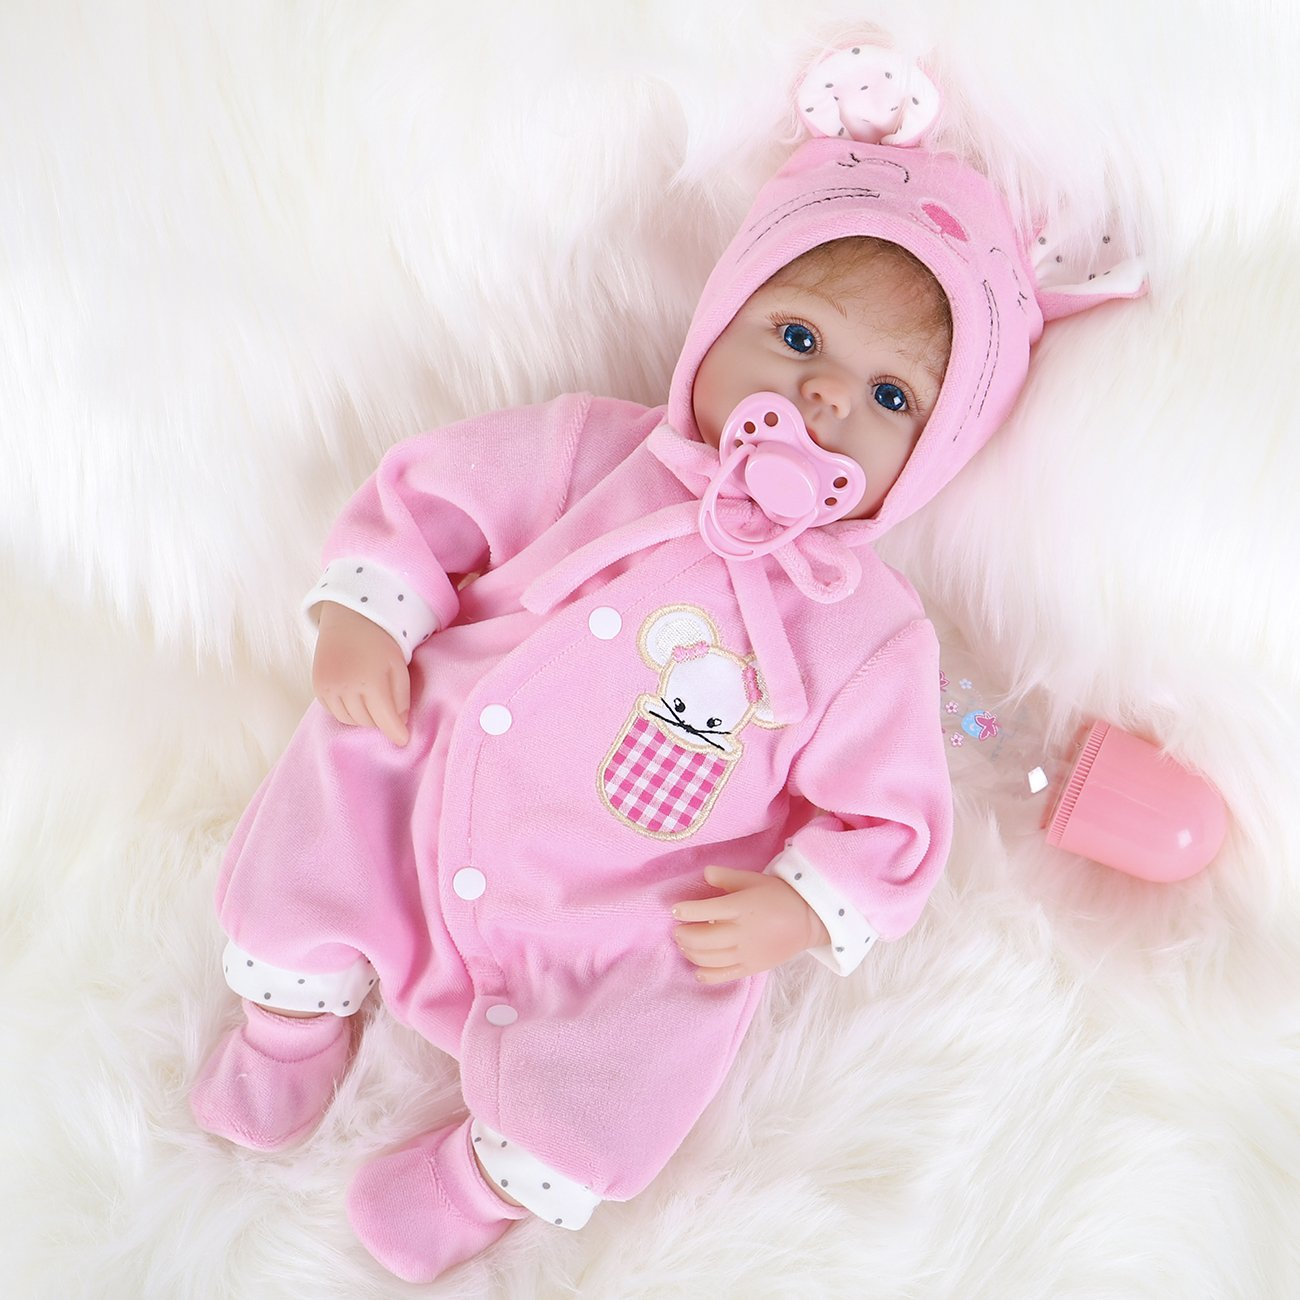 200055807073 Amazon.com: ENA Reborn Baby Doll Realistic Silicone Vinyl Baby 16 inch  Weighted Soft Body Lifelike Doll Gift Set for Ages 3+: Home Improvement